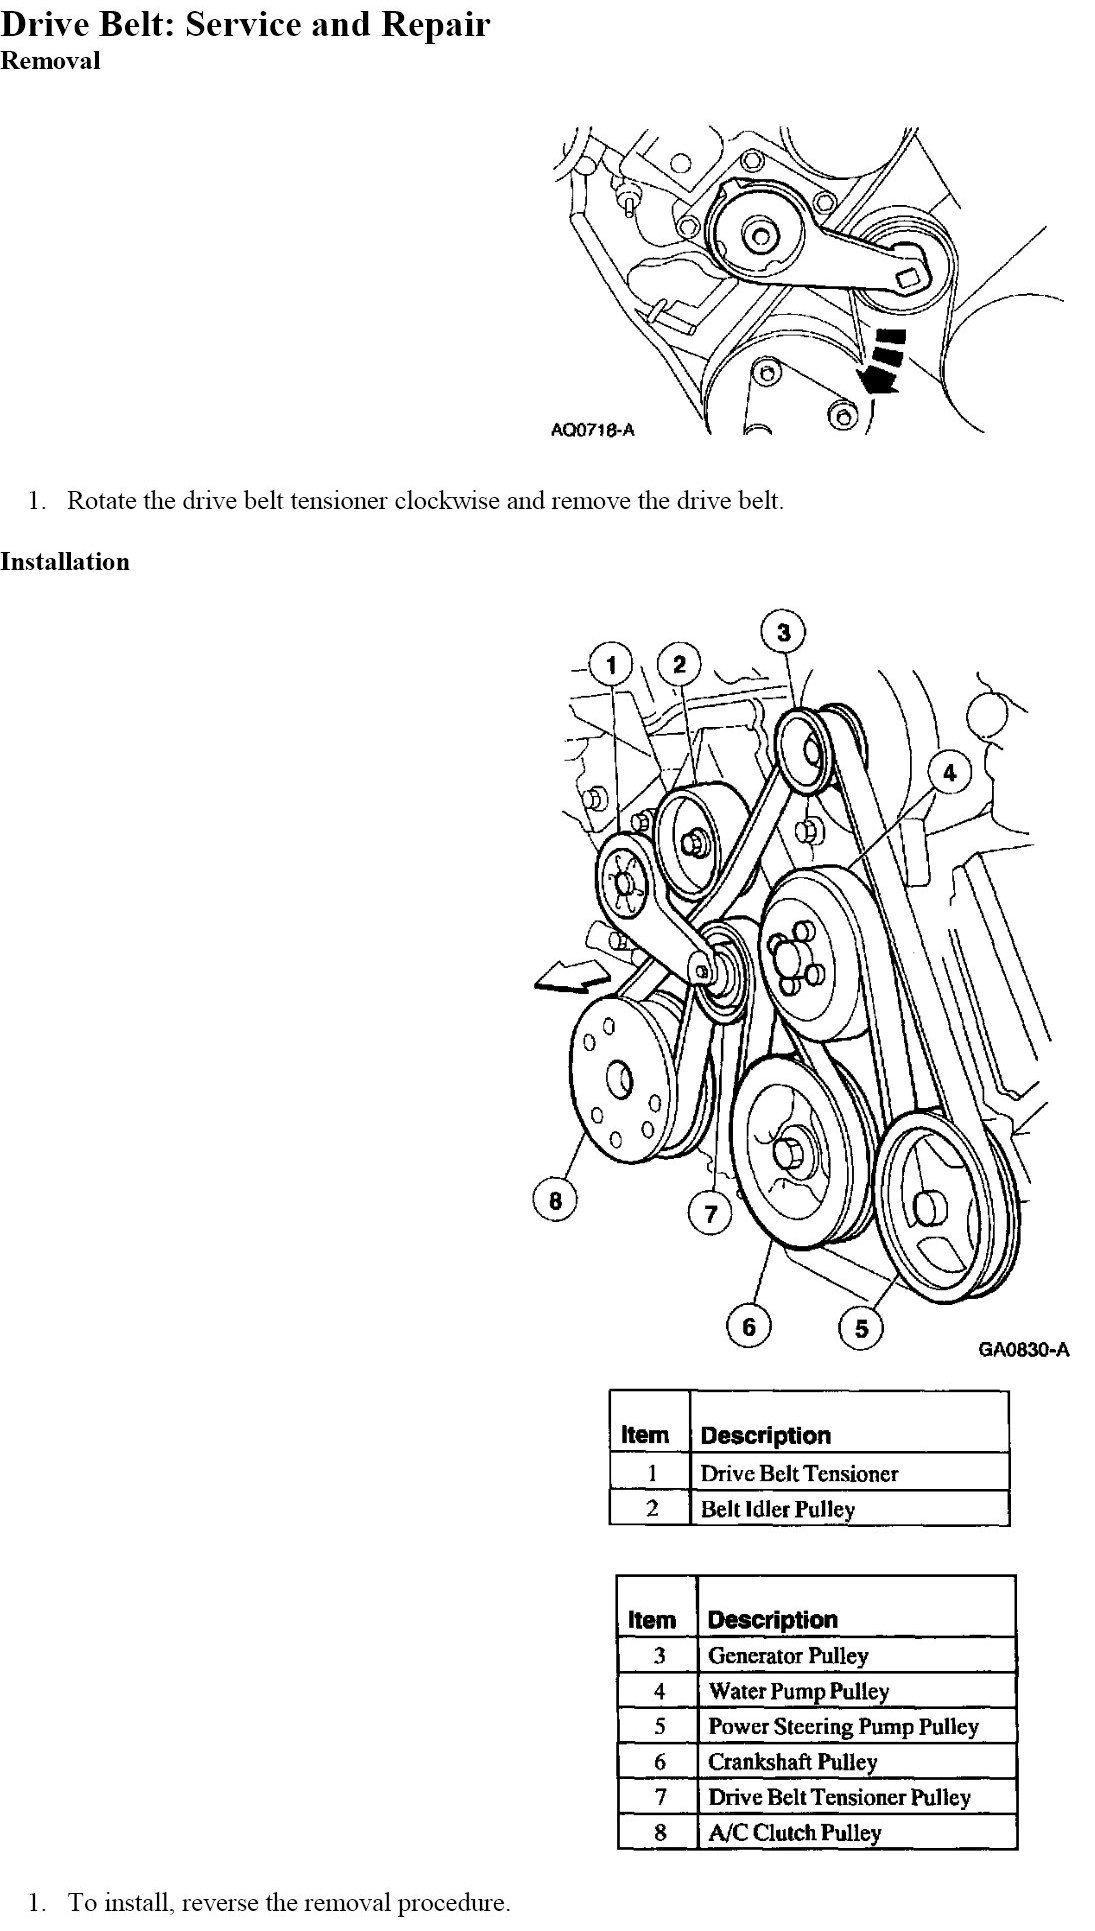 Need    diagram    for serpentine belt on 2000    ford    expedition    4      6L       engine